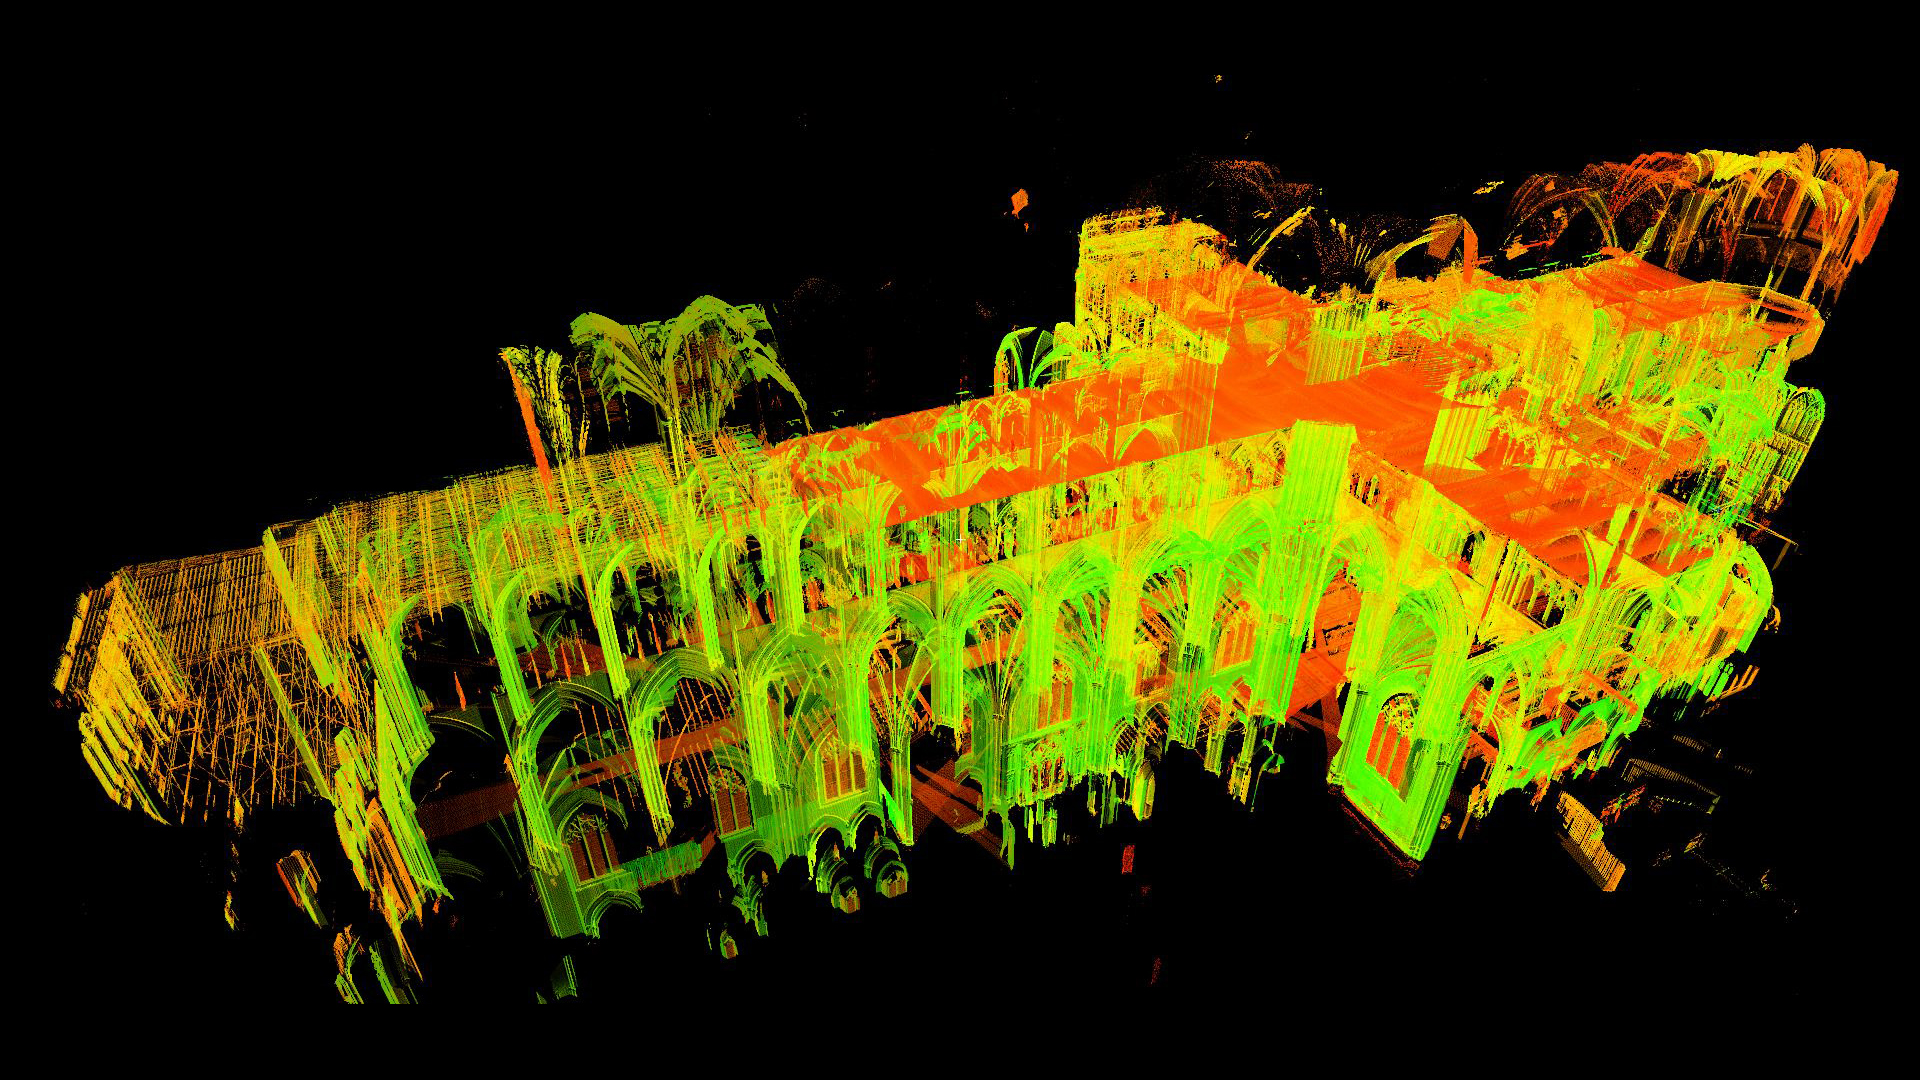 Historian uses lasers to unlock mysteries of Notre Dame